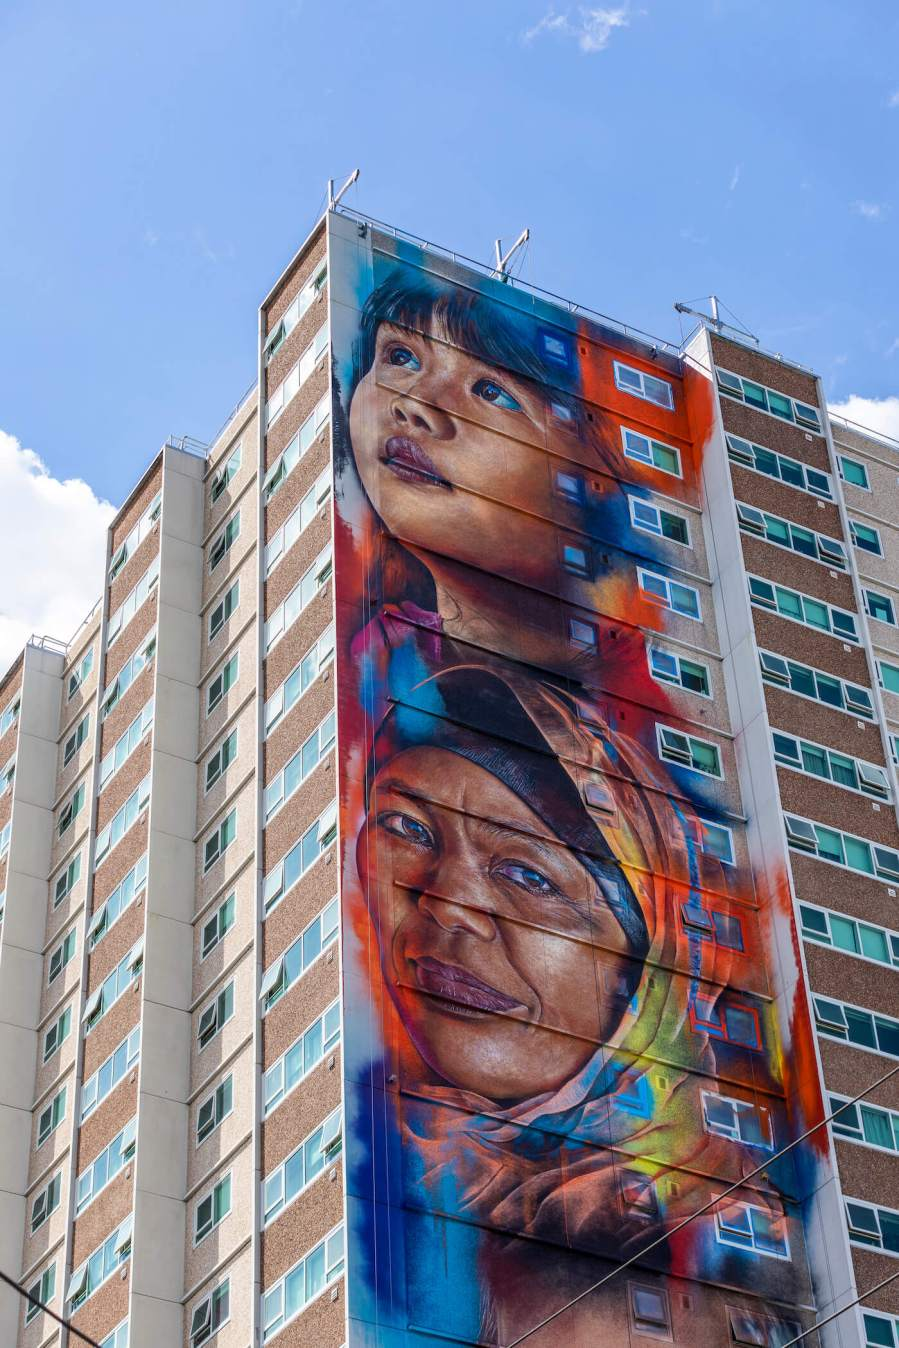 Adnate-street-art-australia-juddy-roller-Nicole-Reed-Photography-3